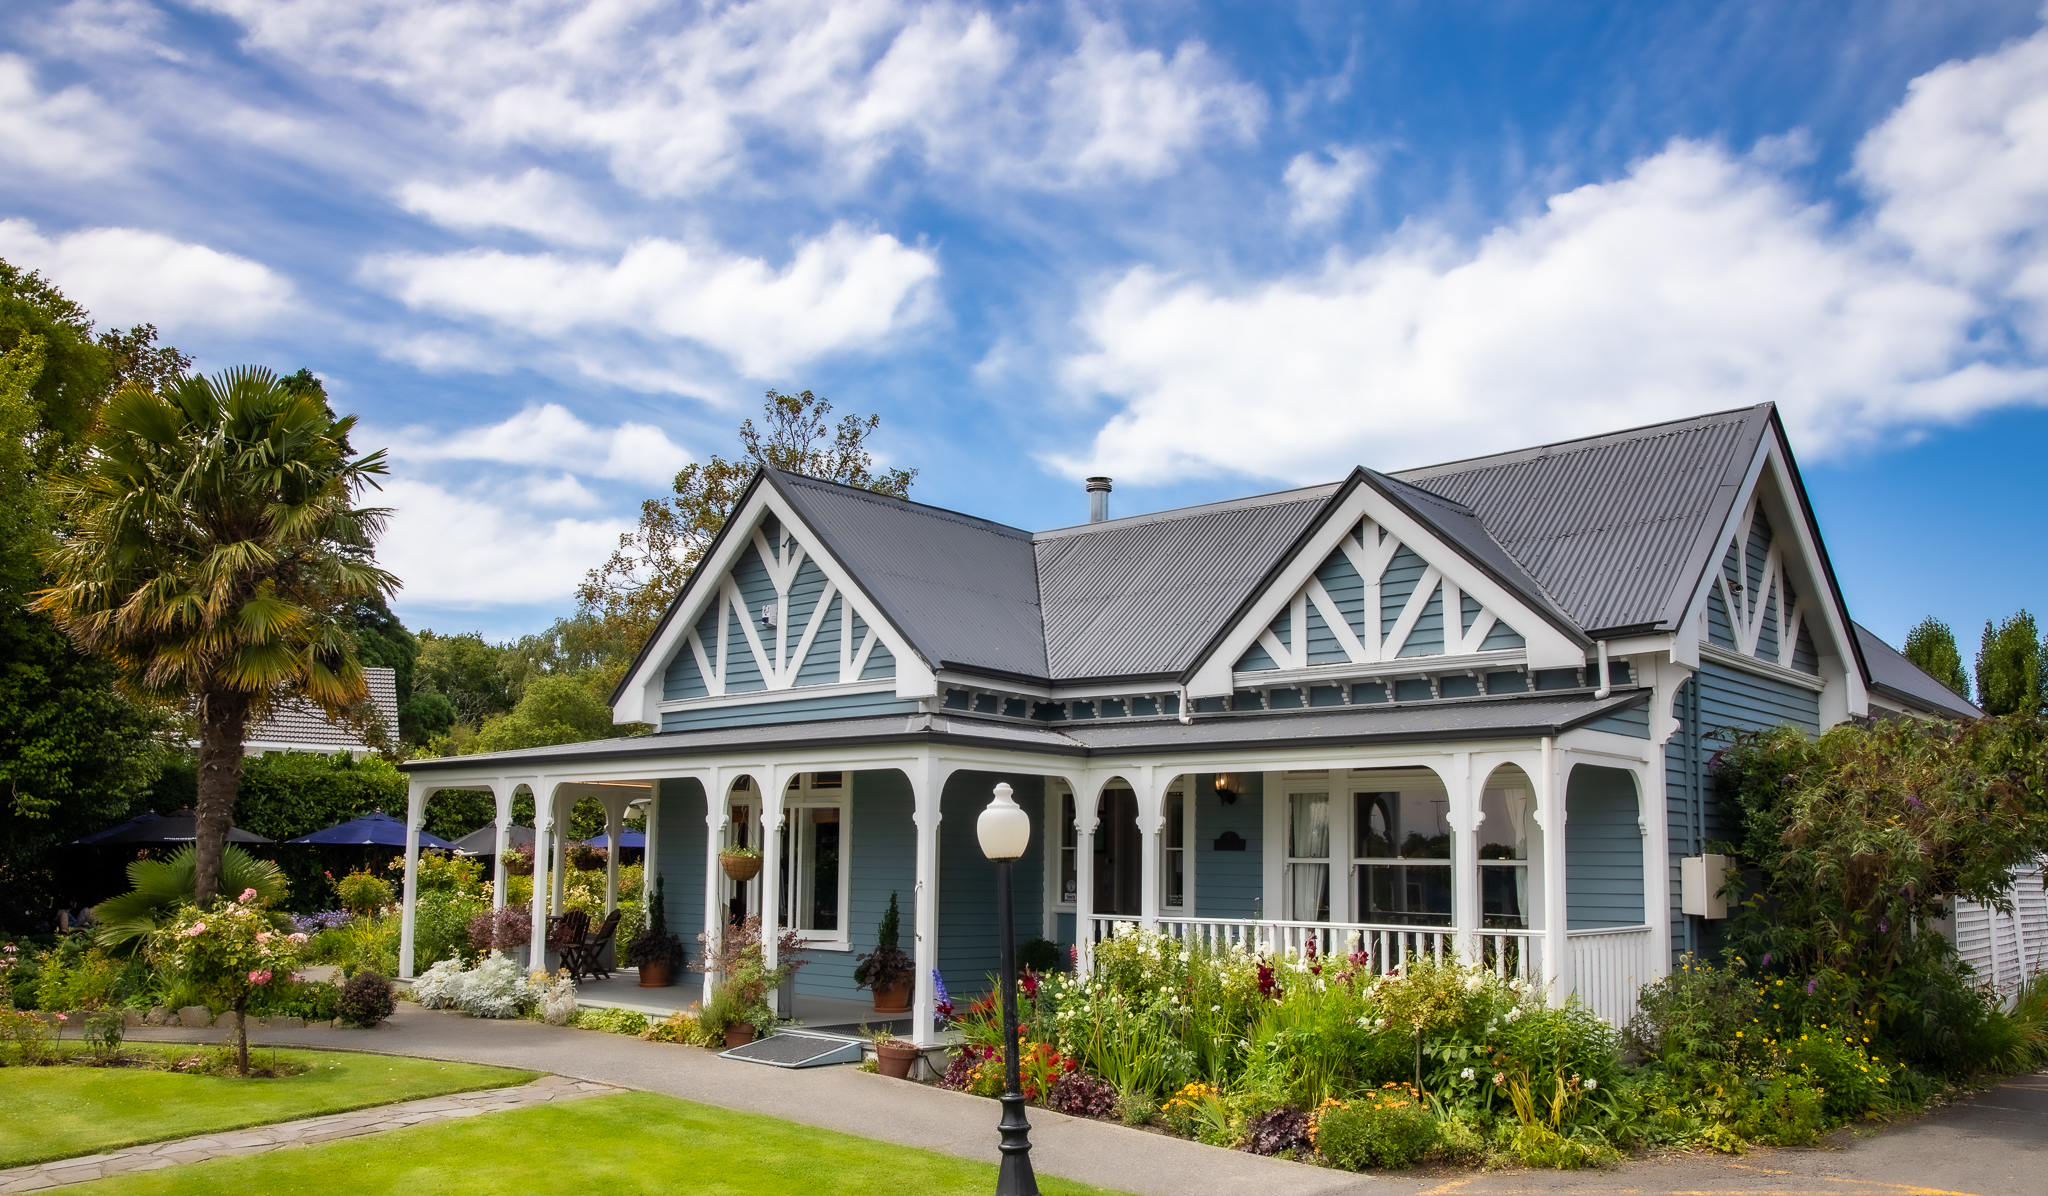 The Old Vicarage builing in Christchurch, New Zealand